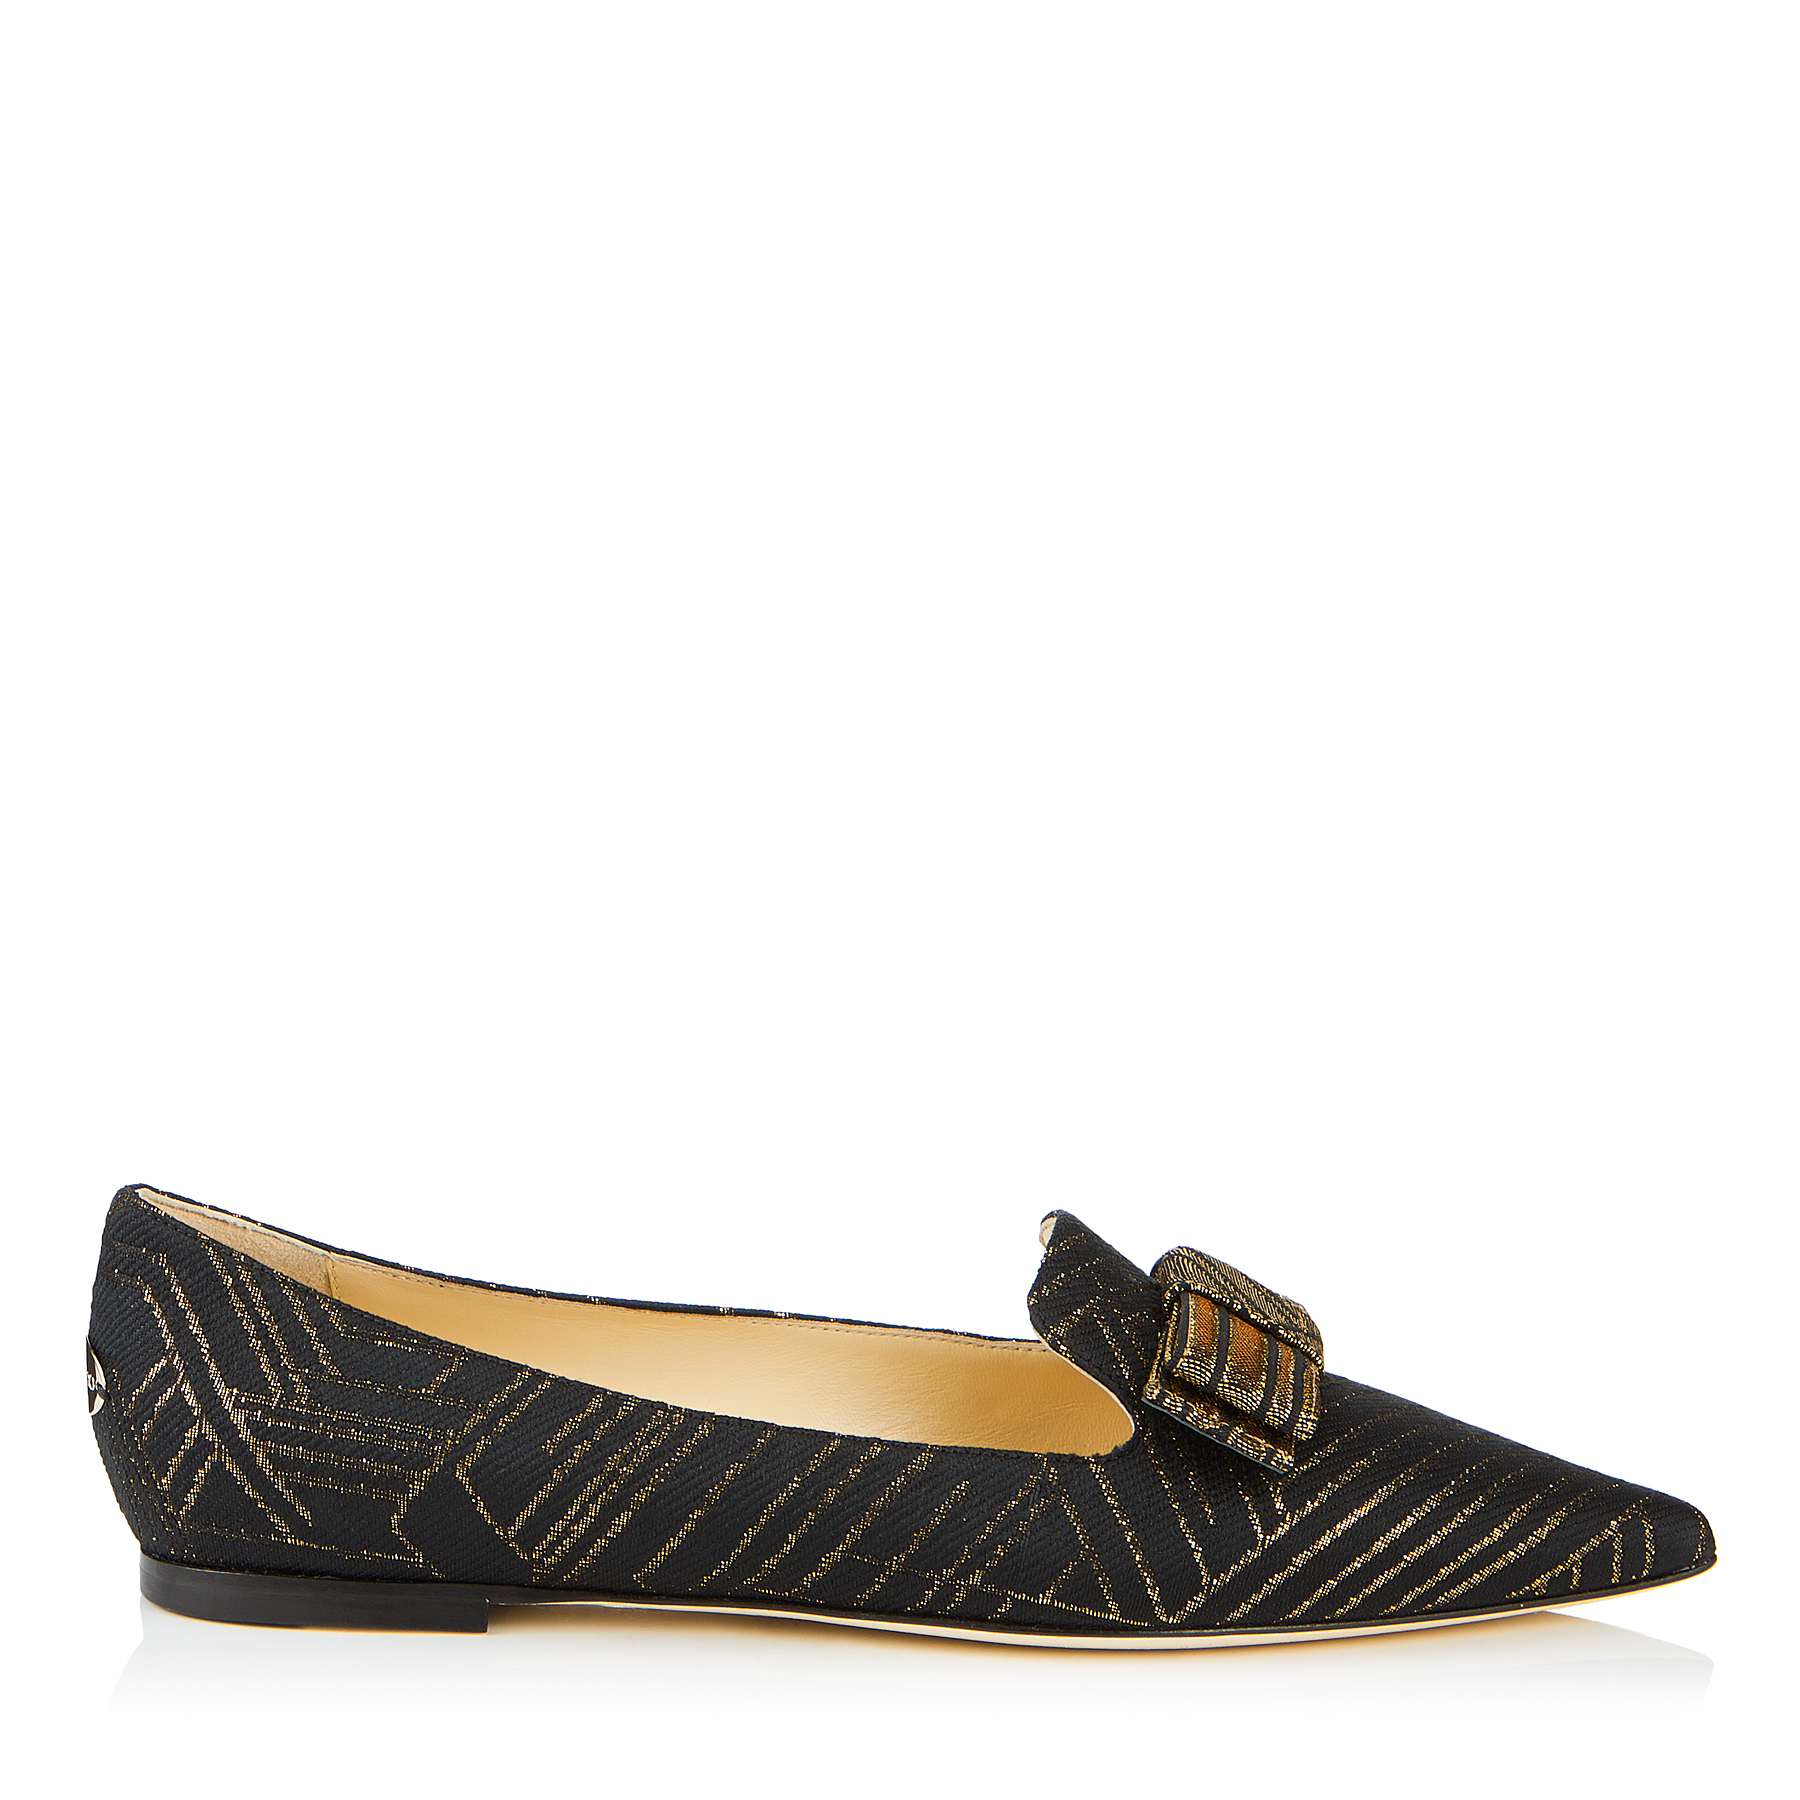 GALA Black and Gold Deco Graphic Fabric Pointy Toe Flats with Bow Detail by Jimmy Choo